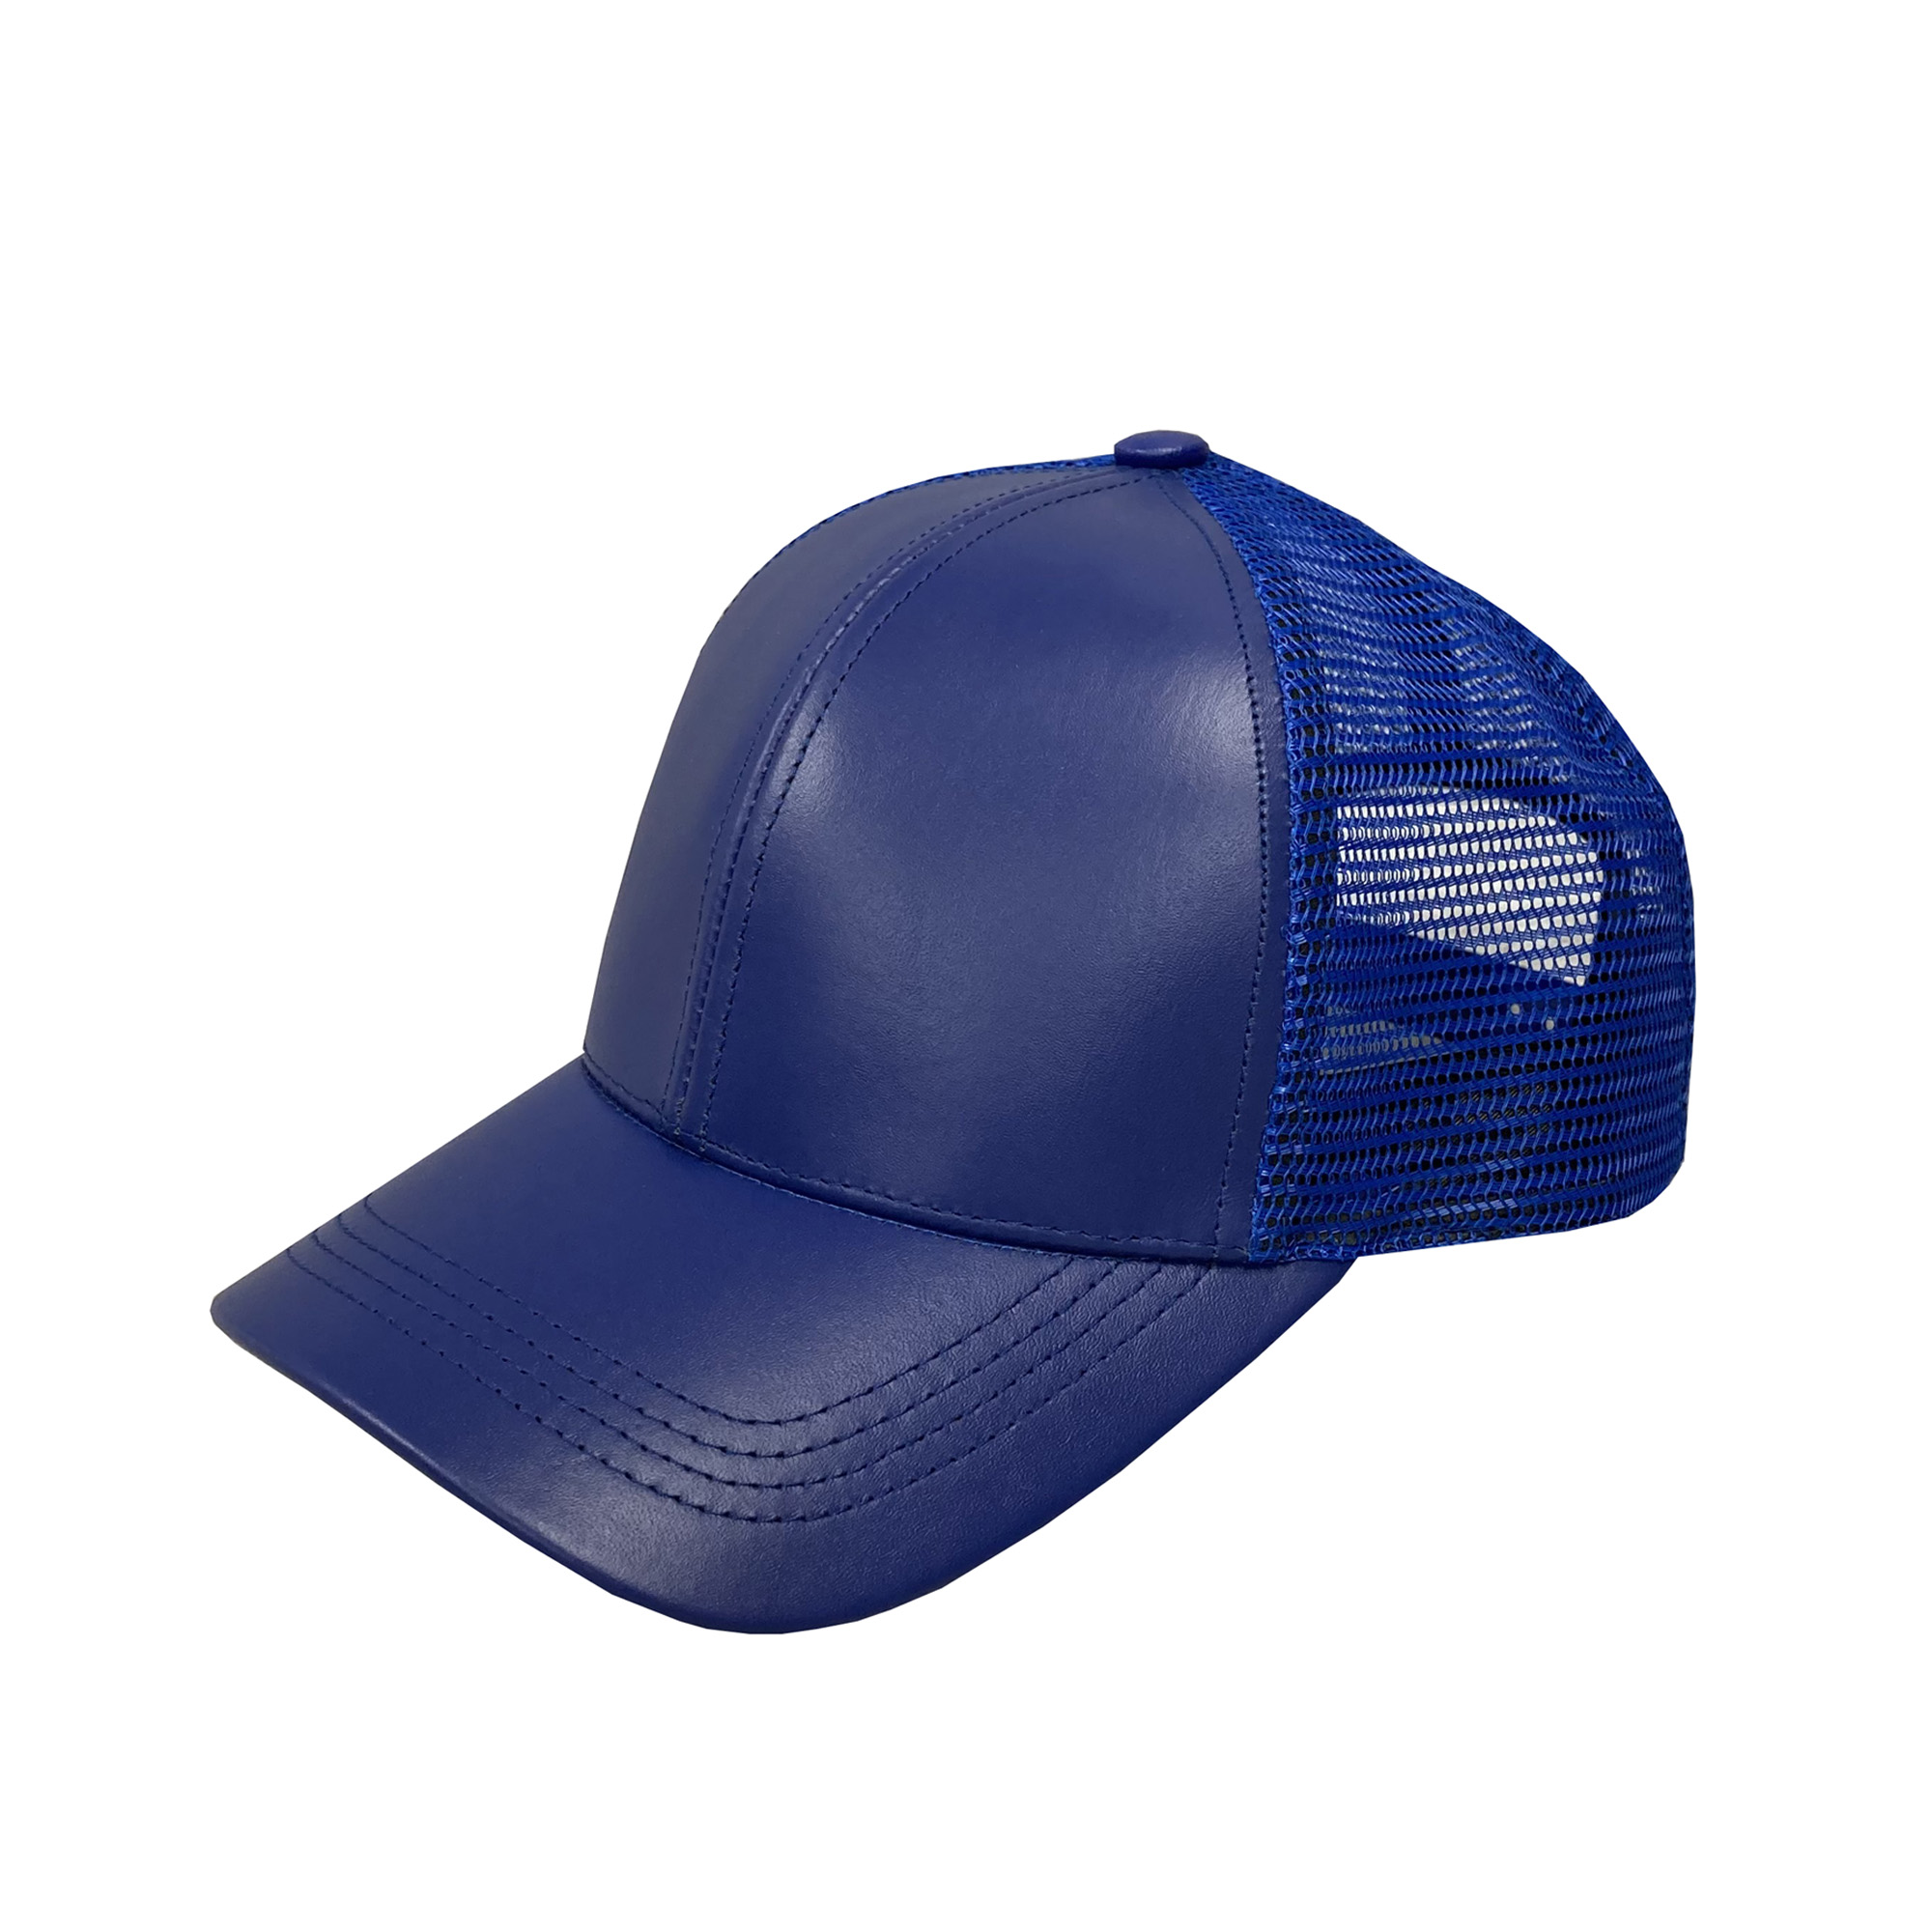 Royal Blue Leather Mid-Profile Mesh Cap